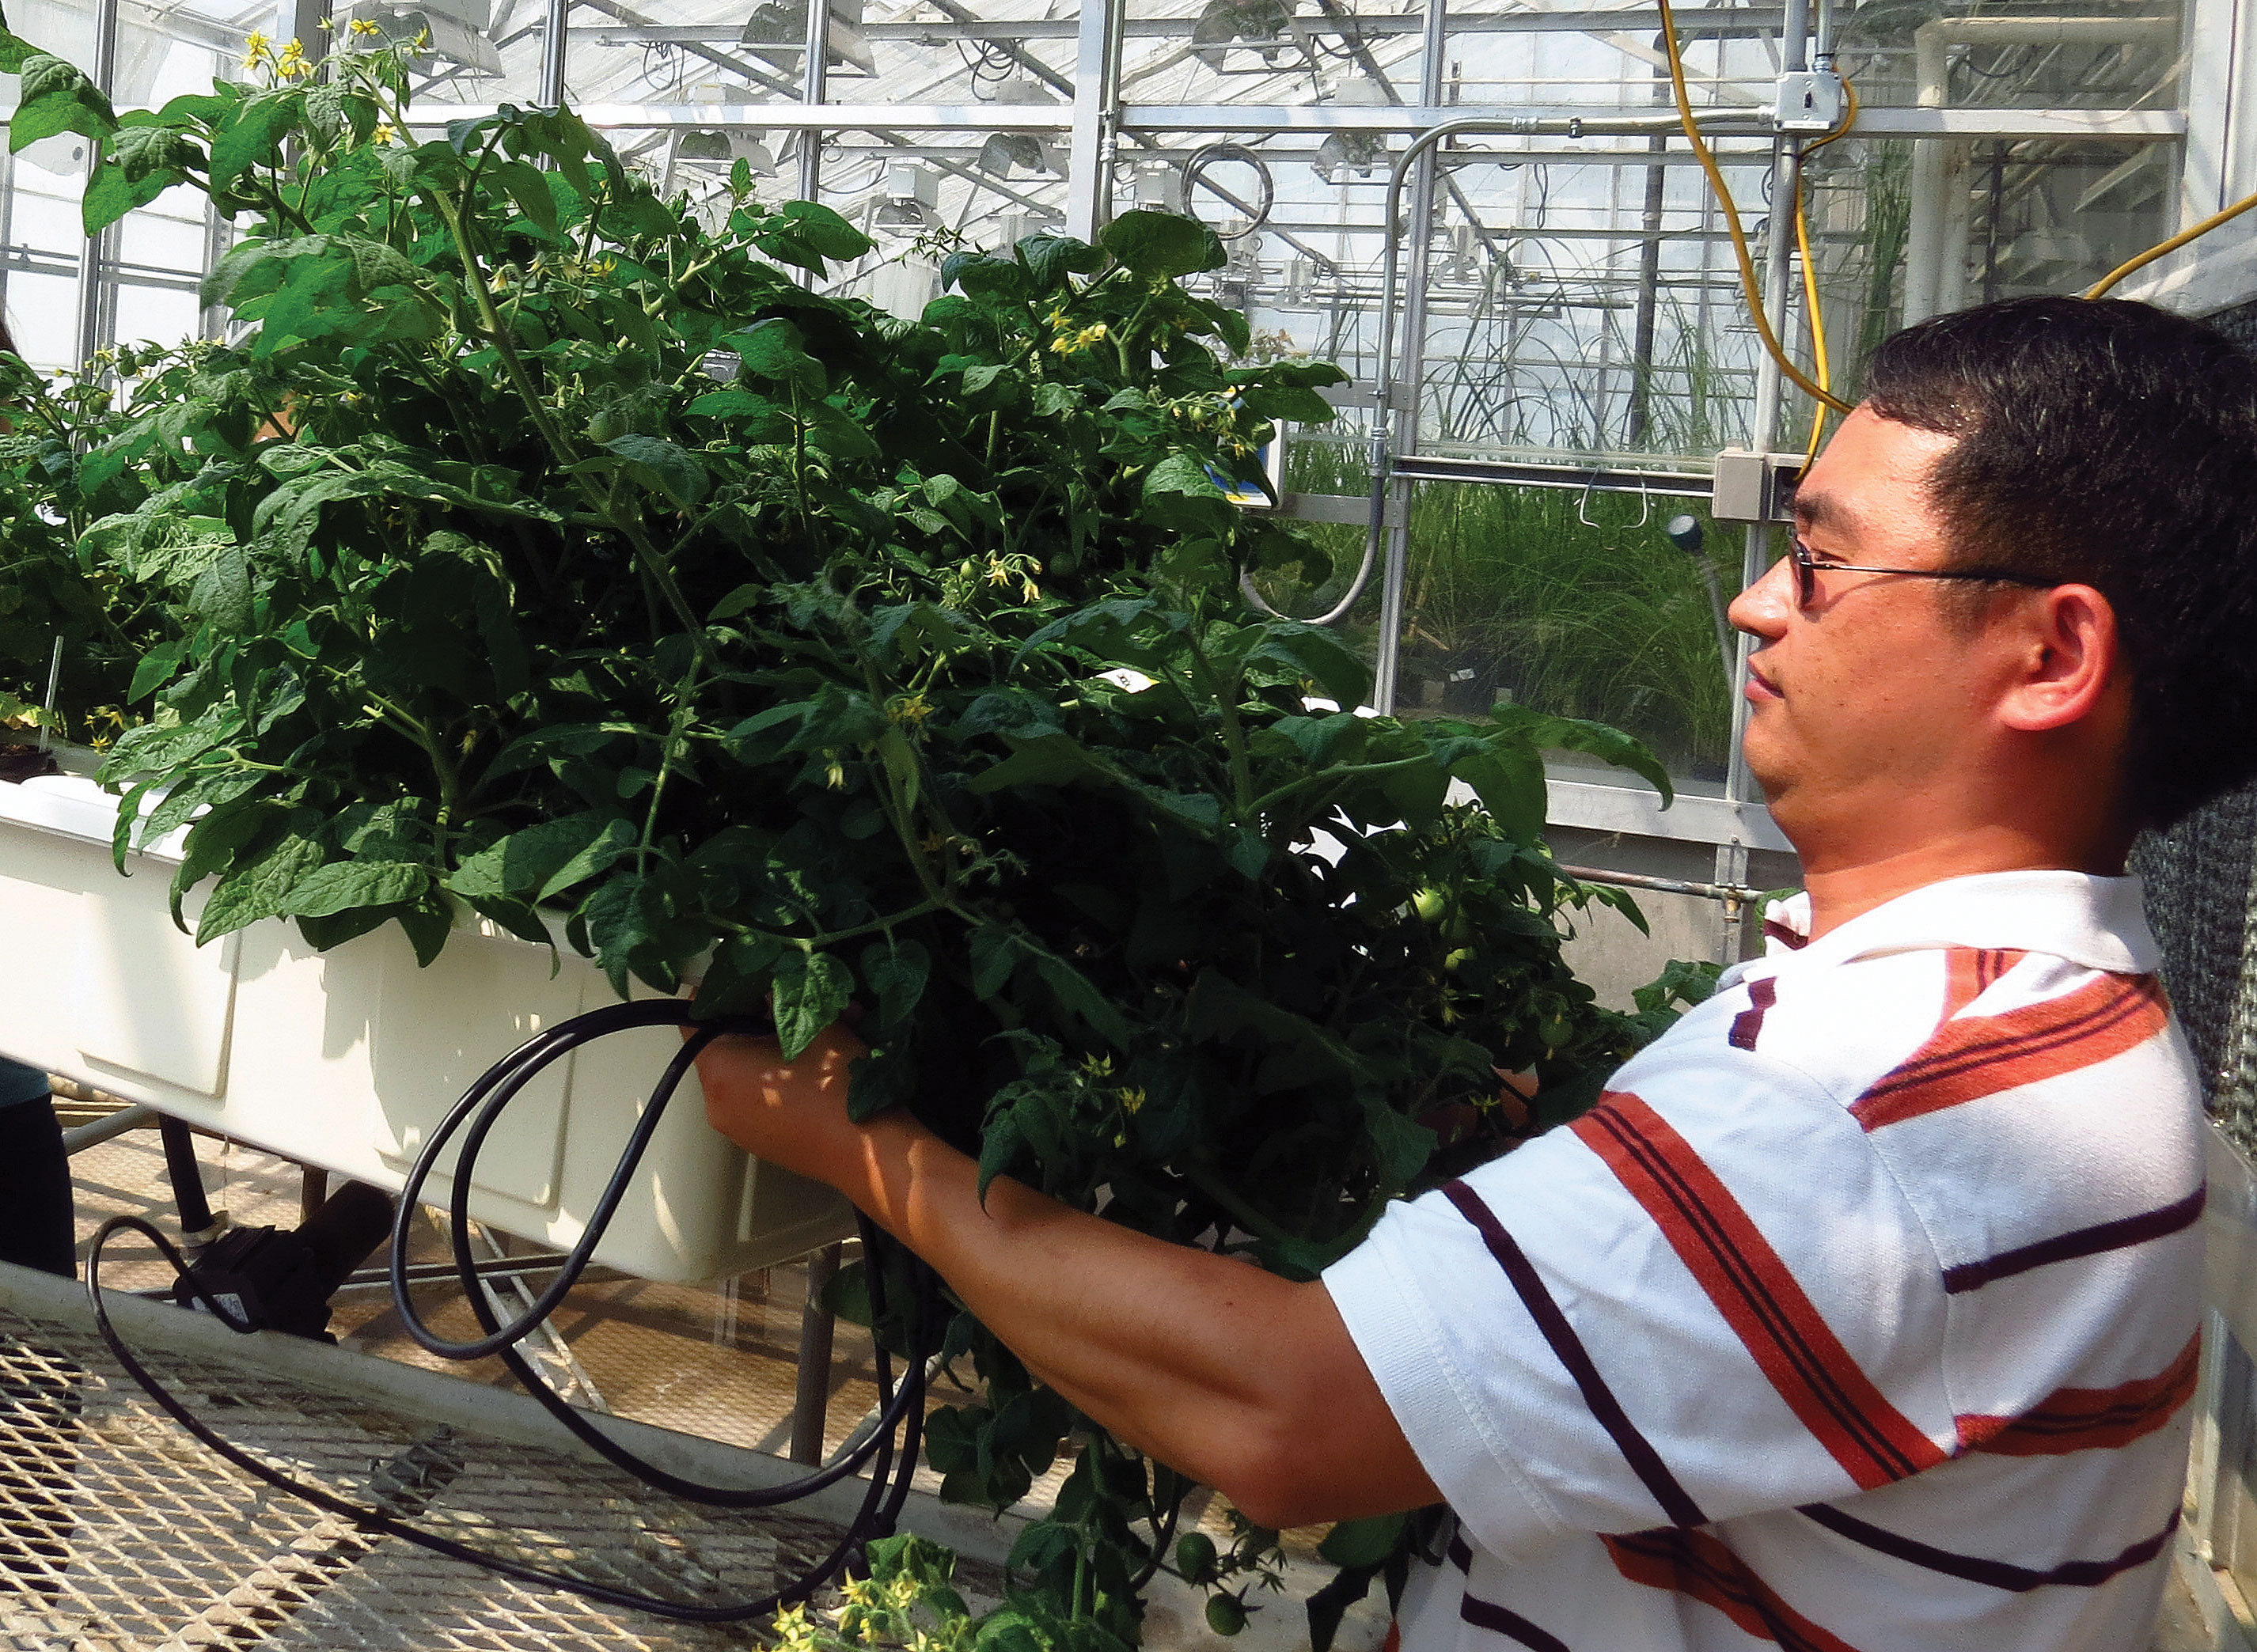 Wei Zheng adjusts his hydroponics system which is used to study PPCP uptake into vegetables